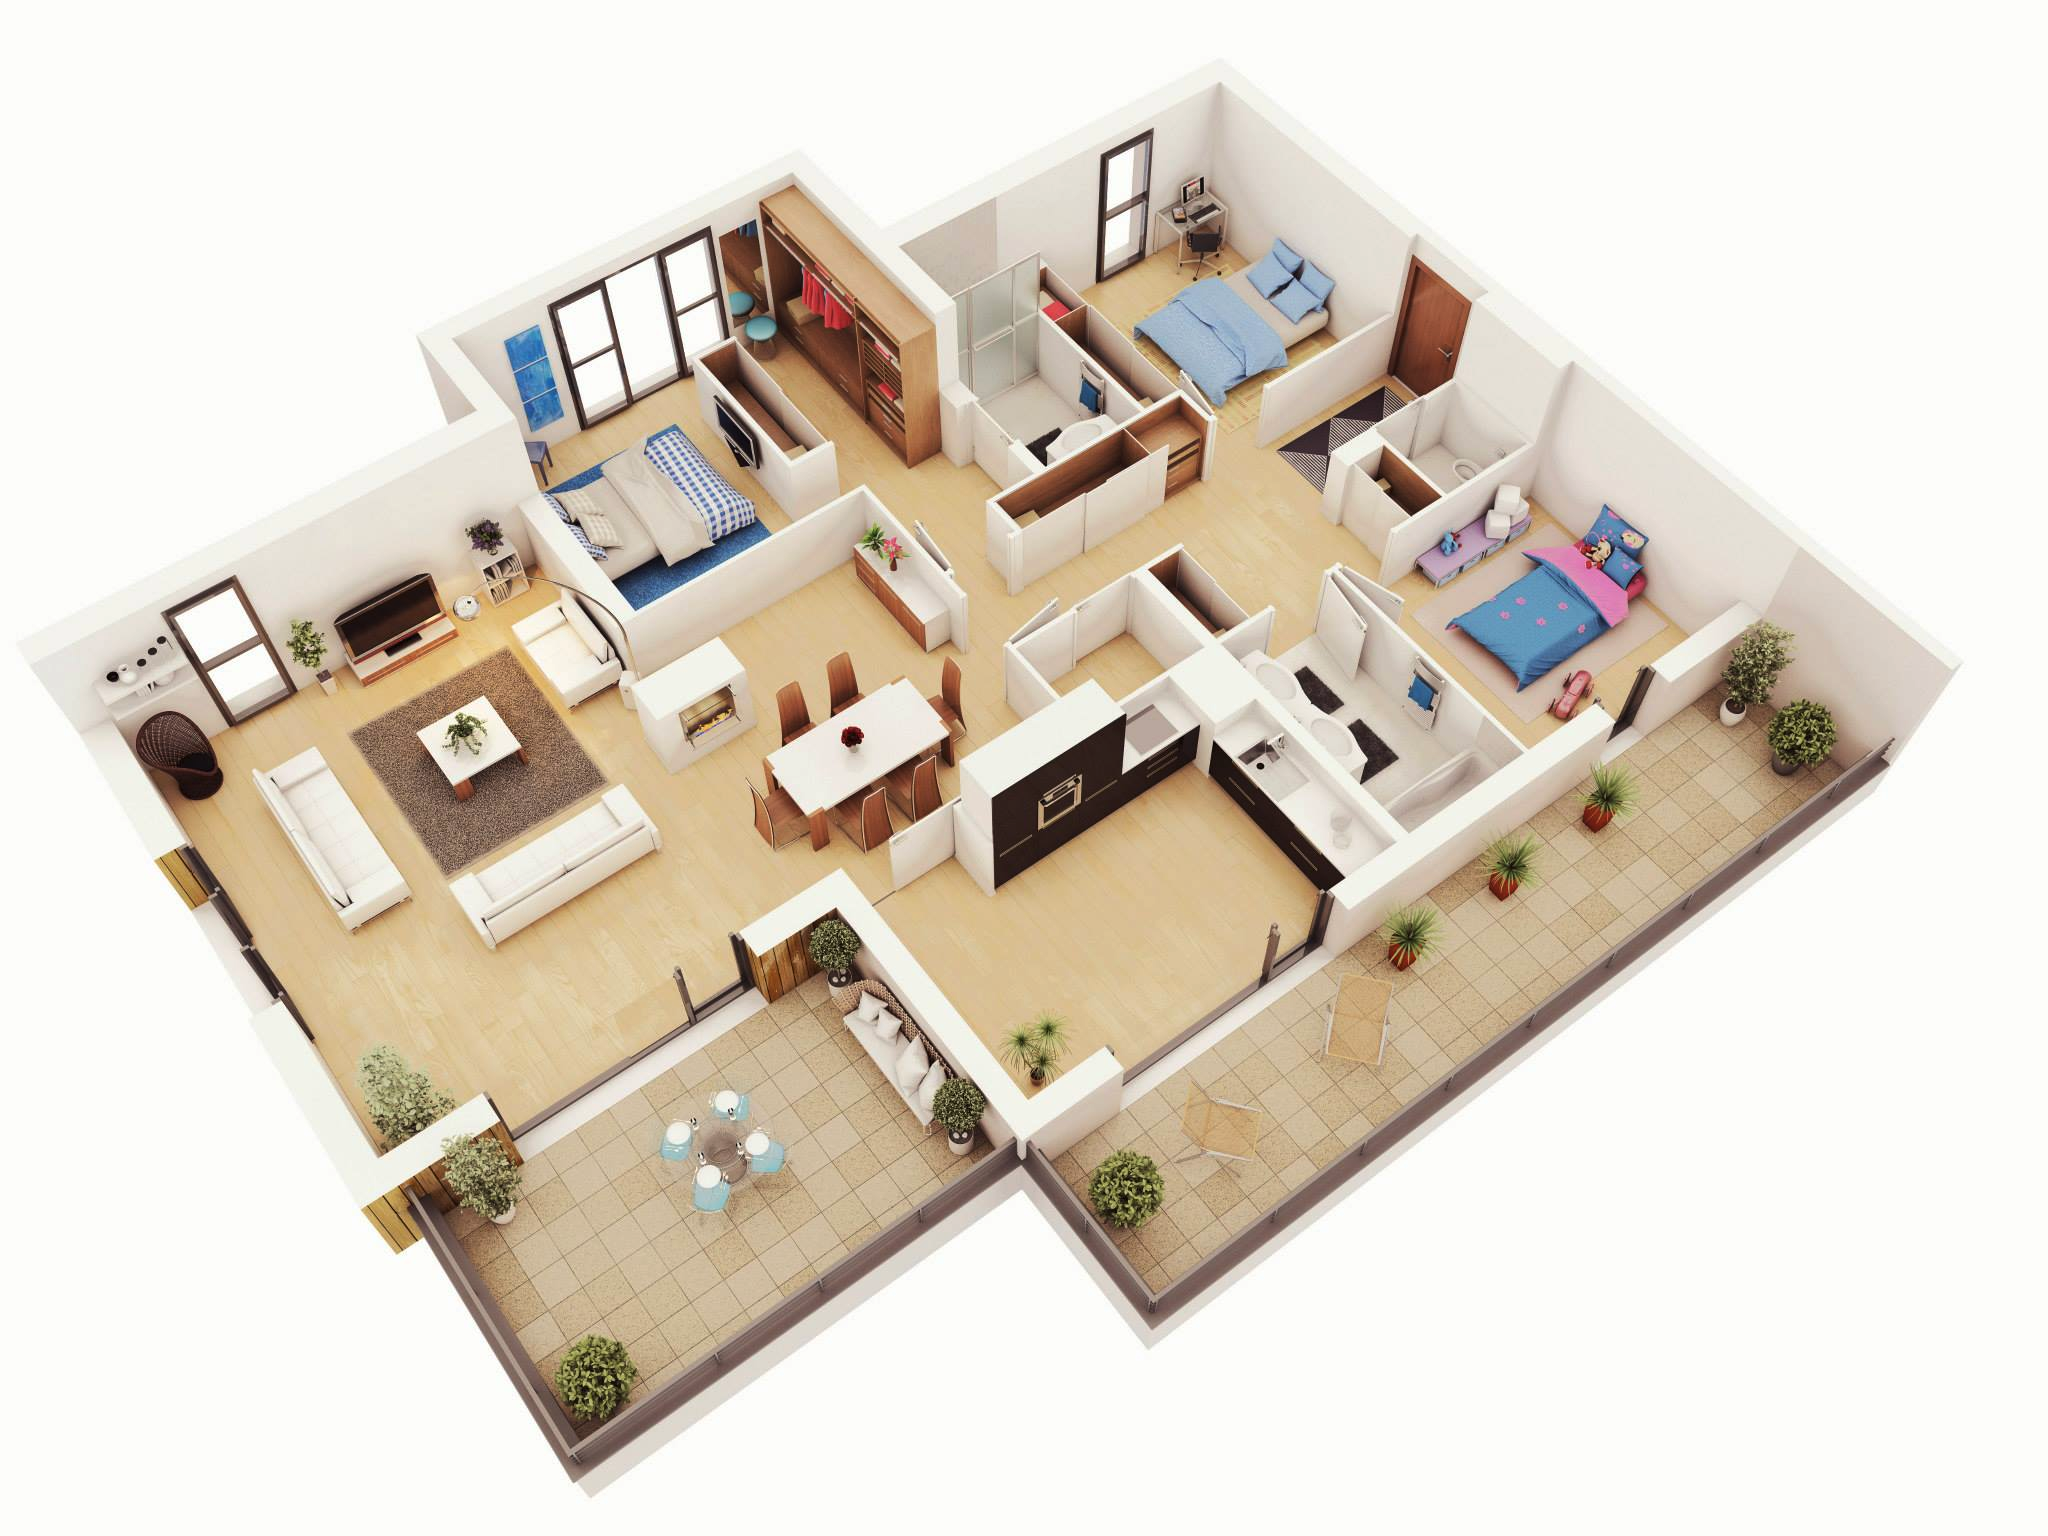 25 more 3 bedroom 3d floor plans for The 3 bedroom floor plans apartment